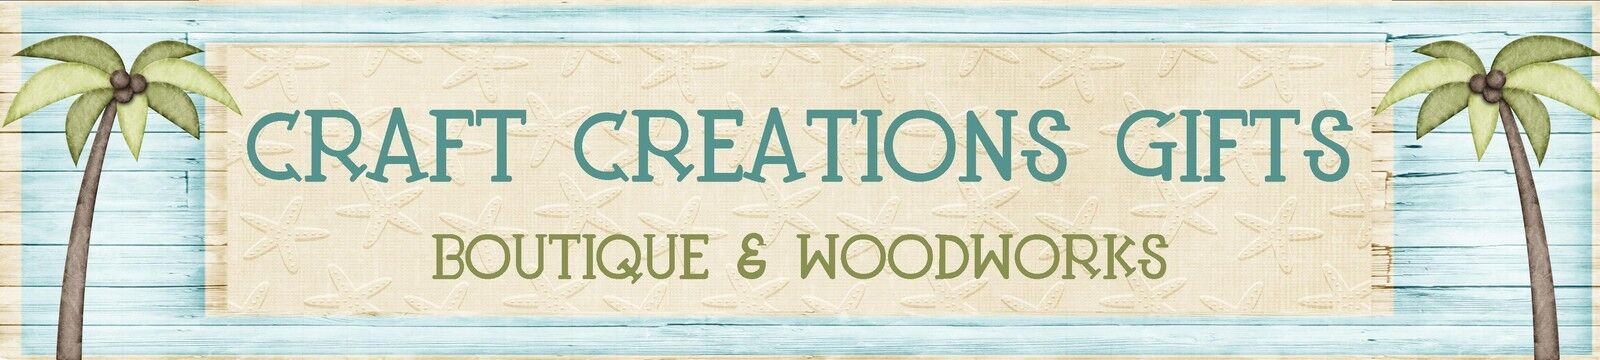 Craft Creations Gifts